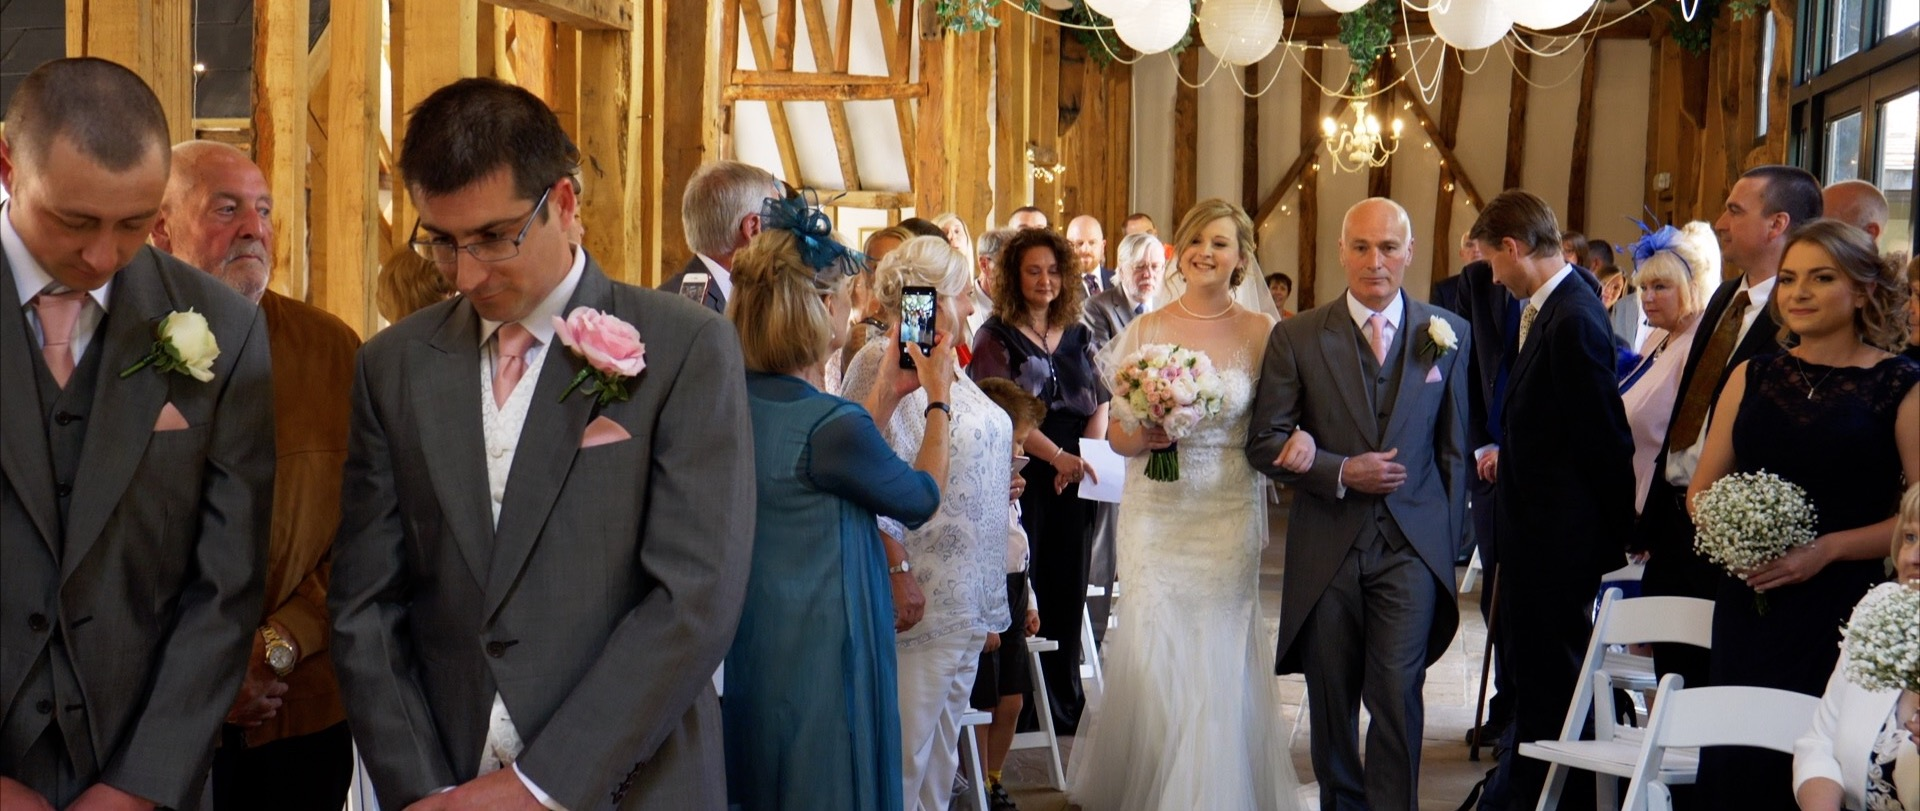 Here comes the bride at high house althorne.jpg